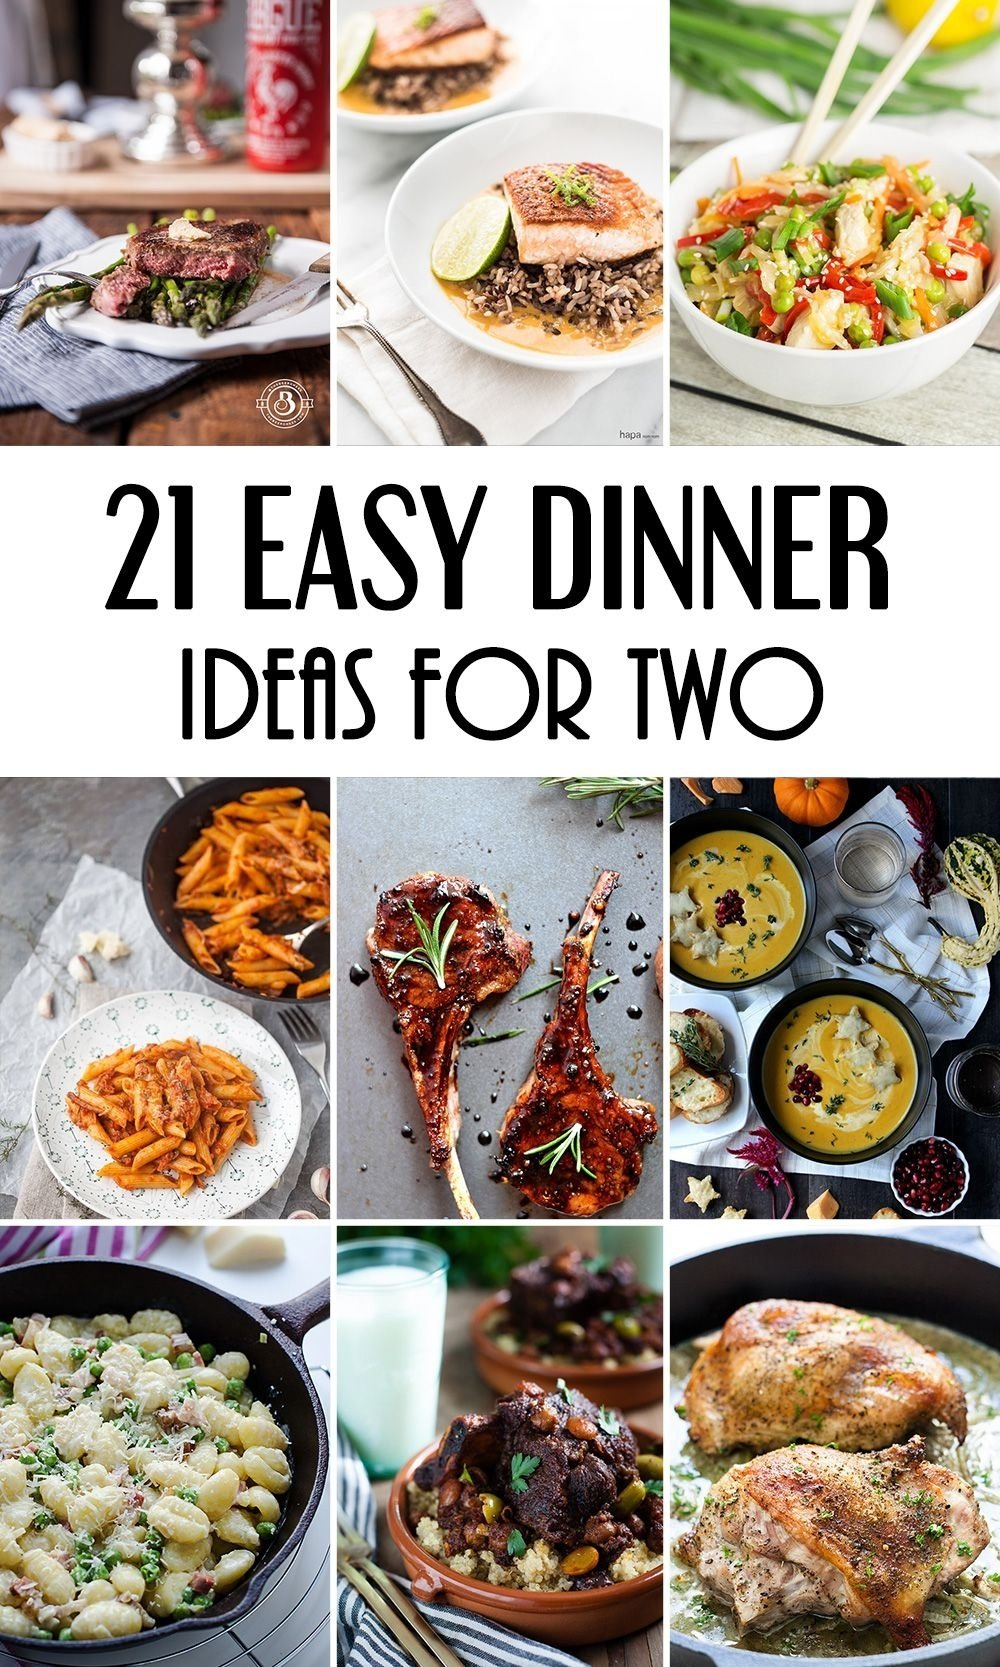 10 Stunning Quick Dinner Ideas For Two 21 easy dinner ideas for two that will impress your loved one 23 2021